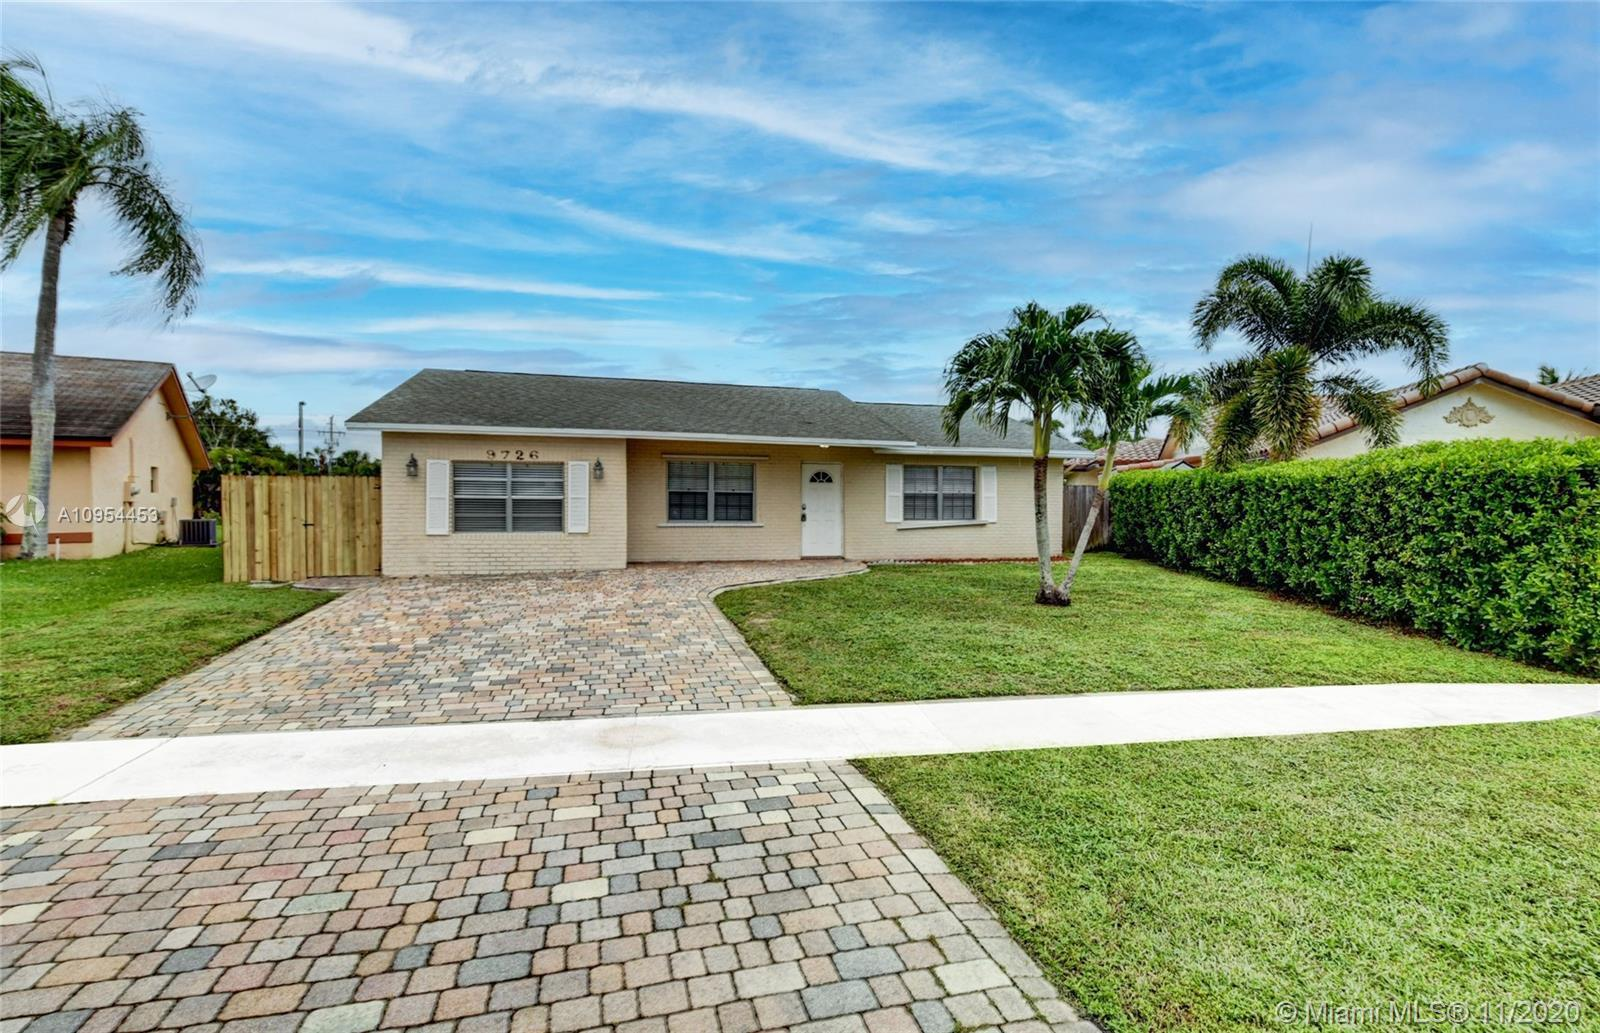 Lovely 3 bedroom, 2 bath home located in an A rated school district in the heart of Boca Raton! The